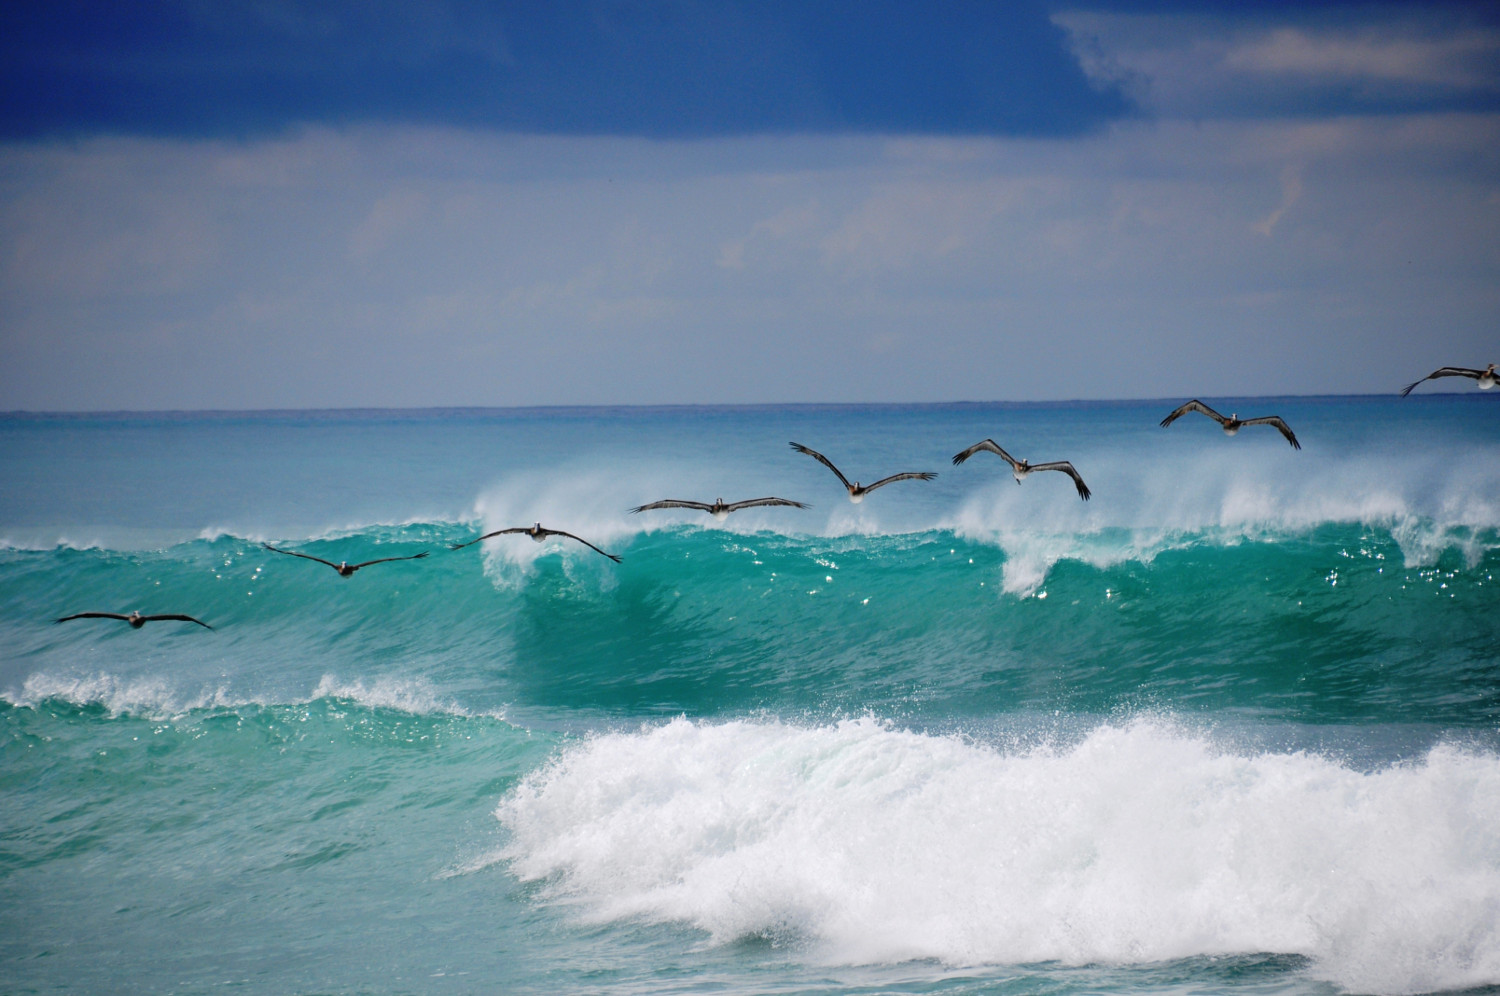 Pelikanformation über türkisen Pazifikwellen | Pelicans flying in formation above the turquoise Pacific waves